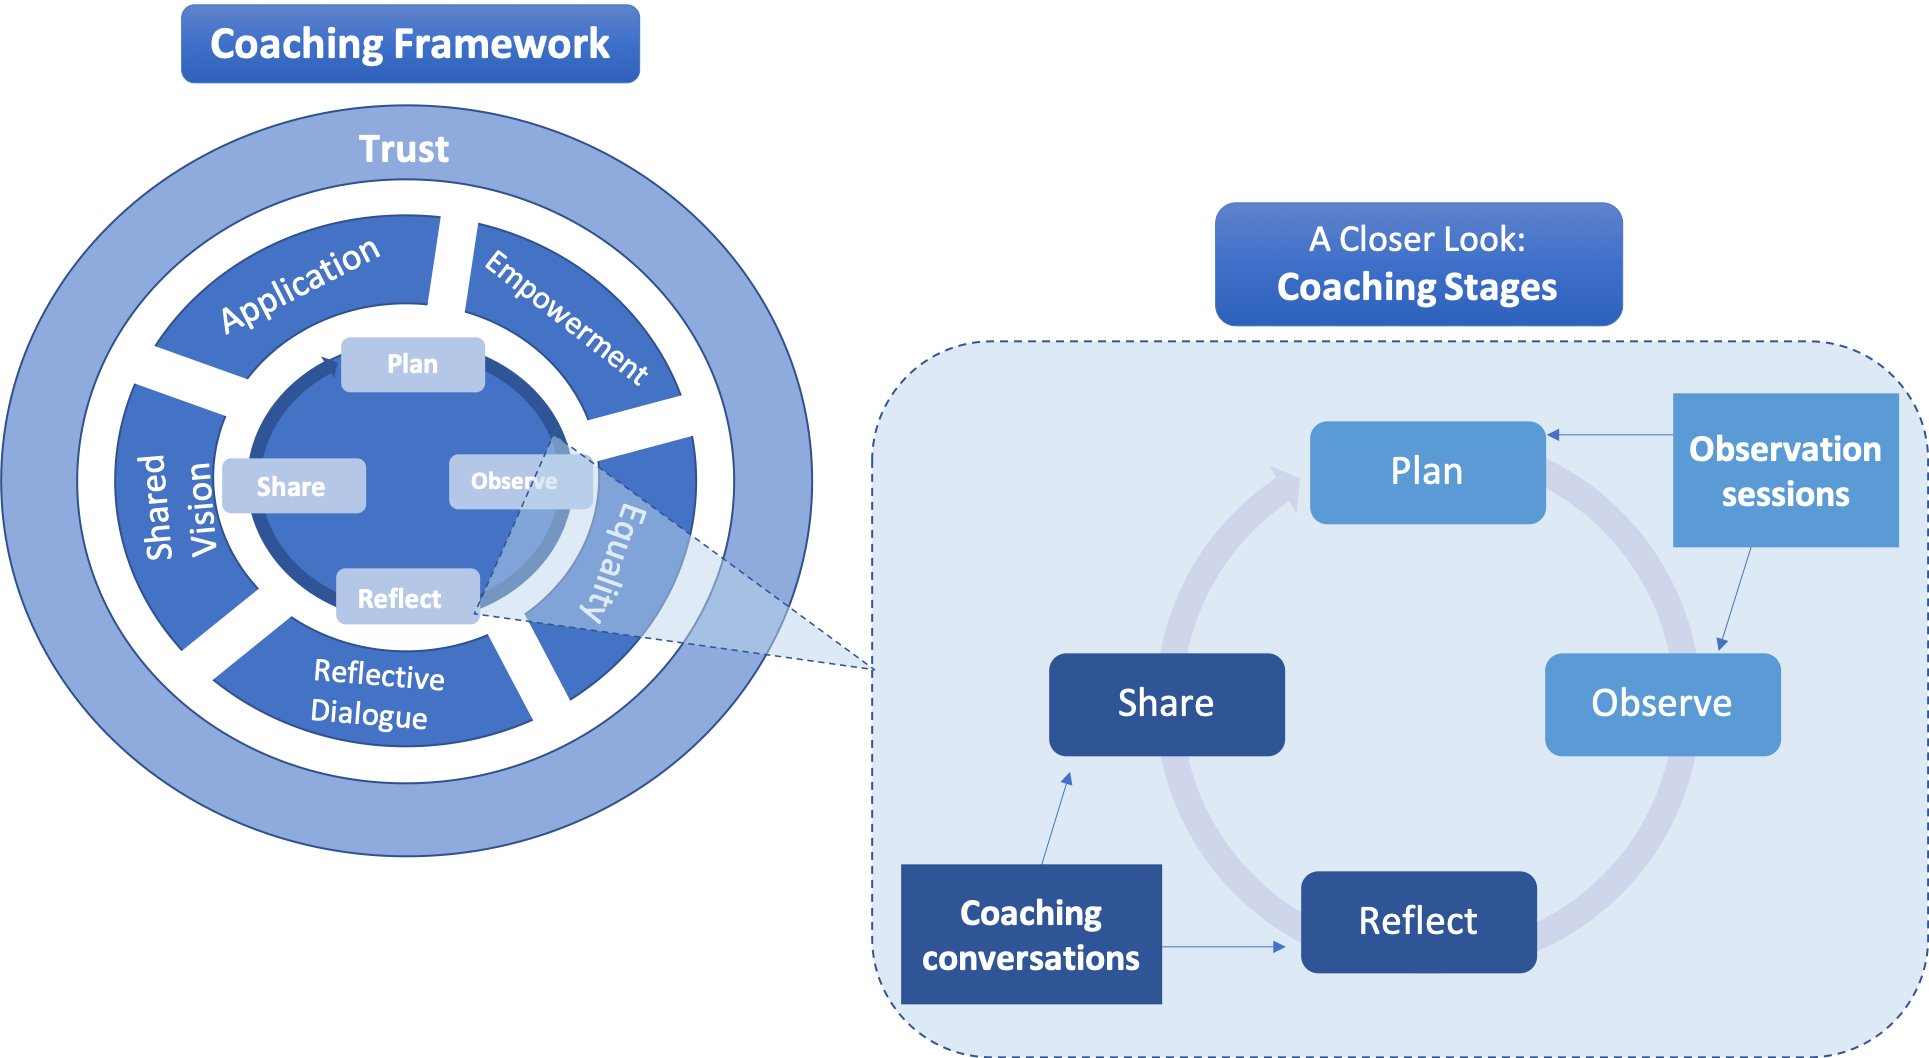 CoachingFramework